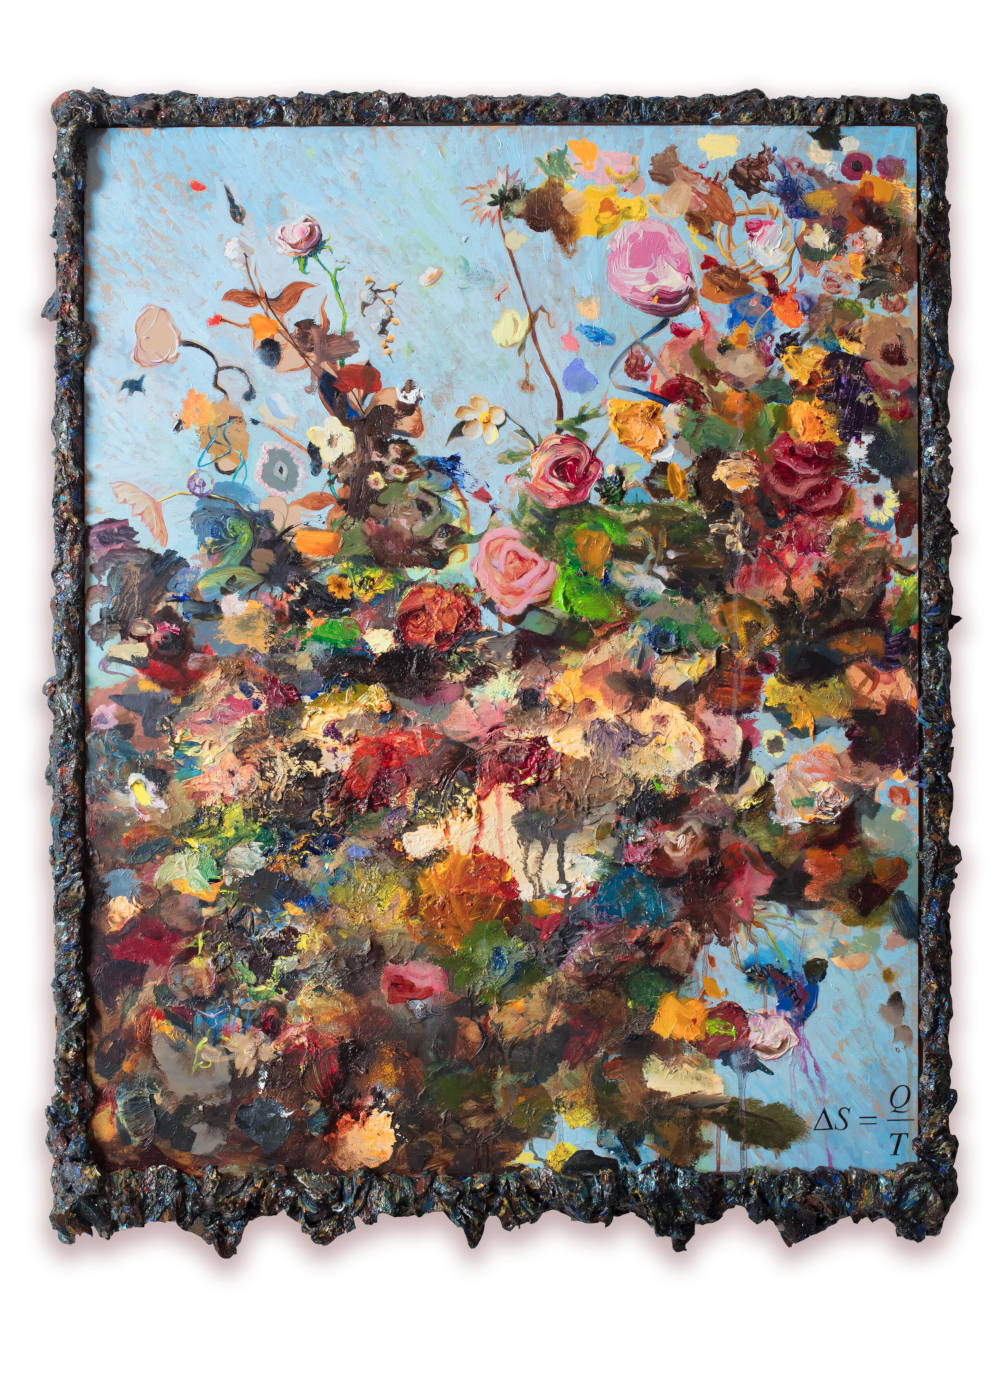 Keith Tyson, Entropy, 2016 - 2019. Oil on aluminium © Keith Tyson. Courtesy of the artist and Hauser & Wirth